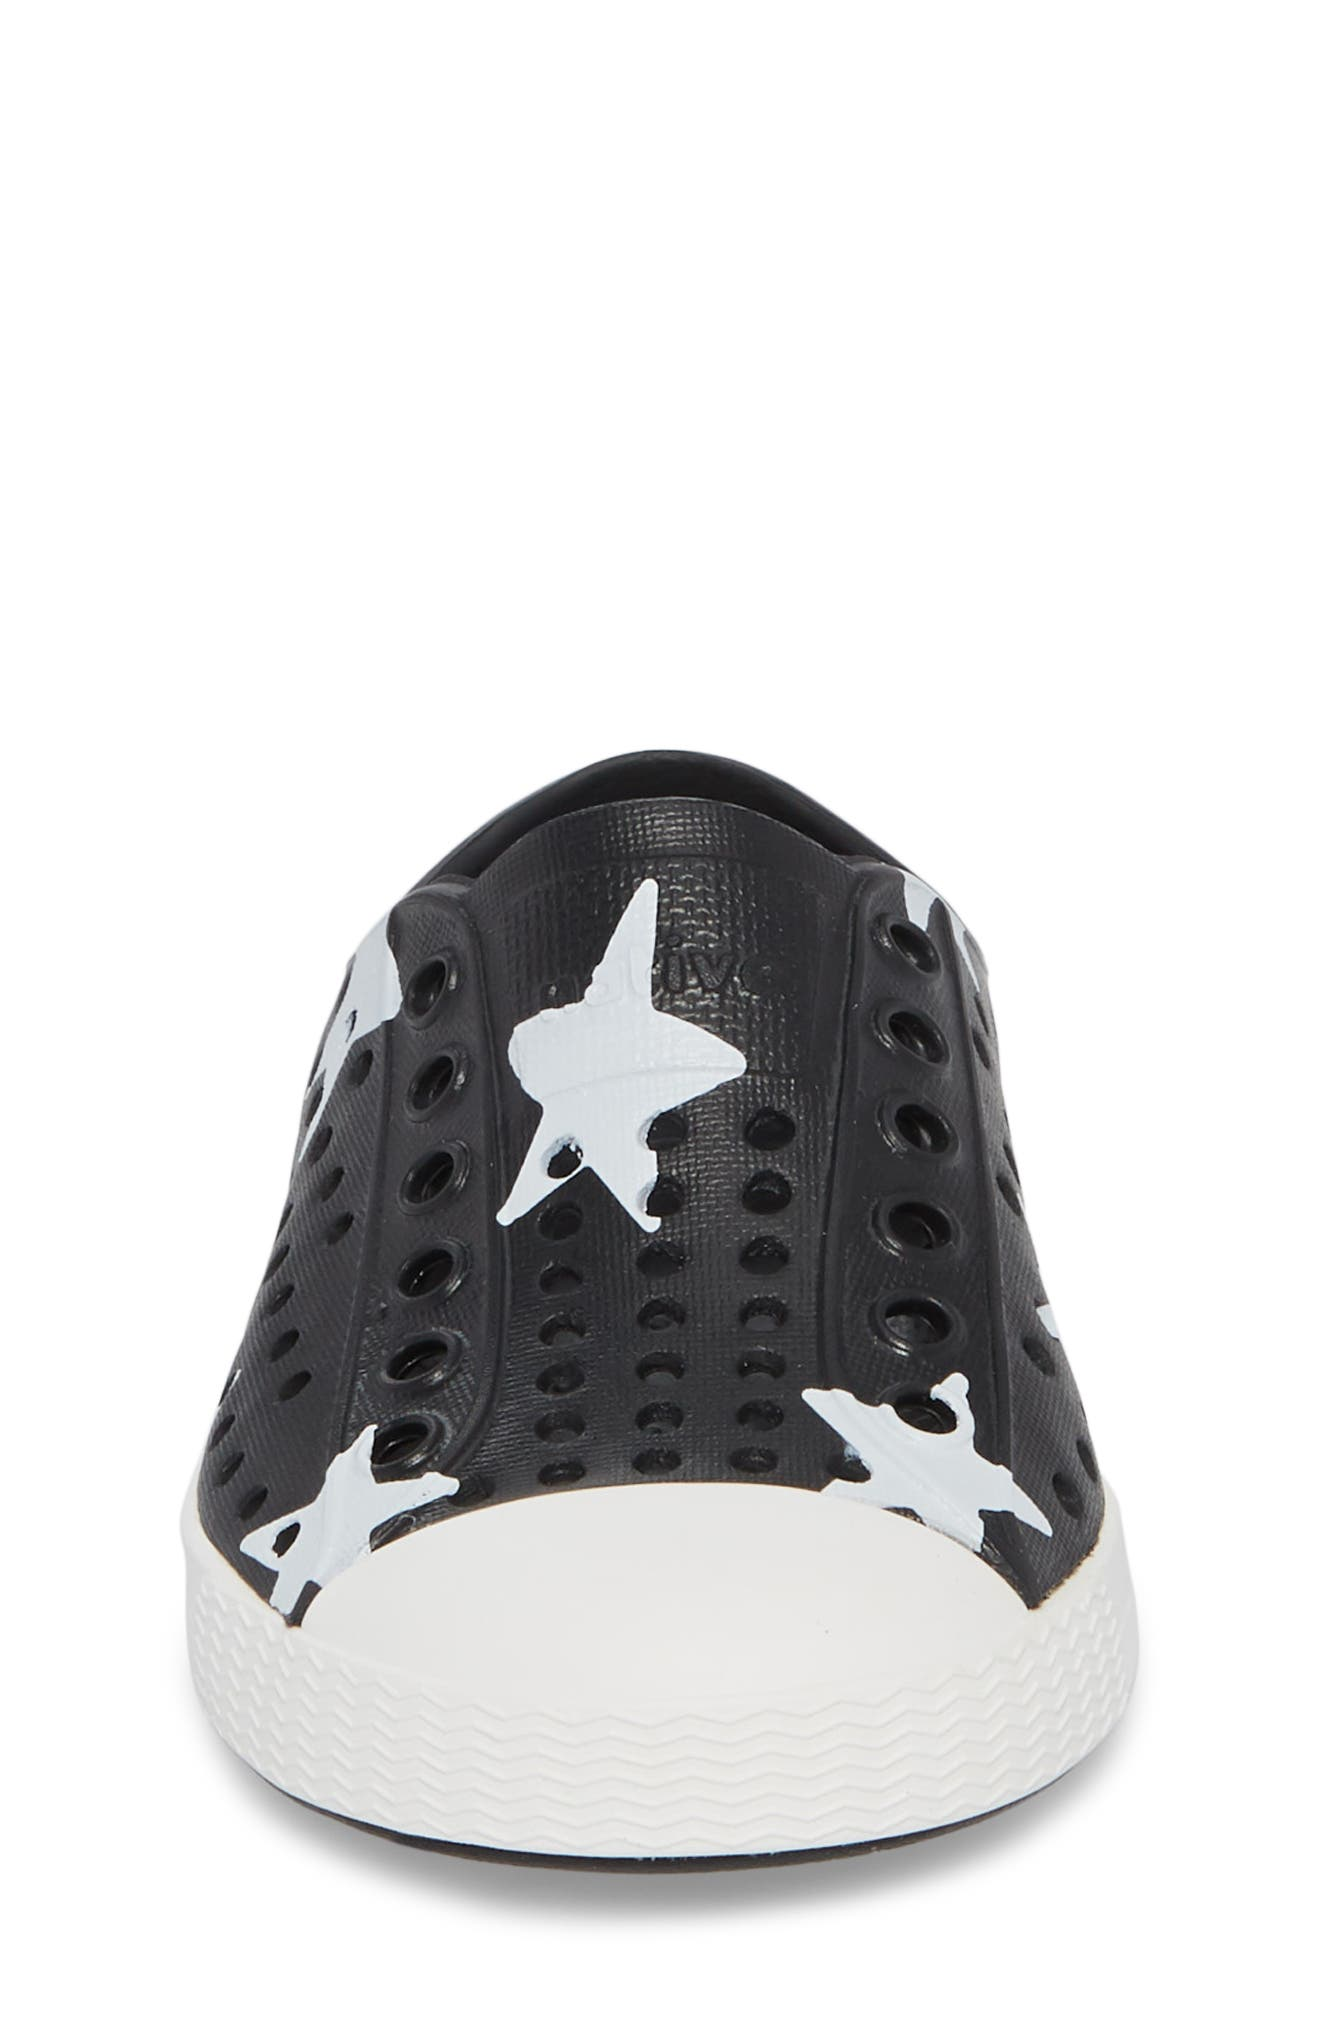 NATIVE SHOES, Jefferson Quartz Slip-On Sneaker, Alternate thumbnail 4, color, JIFFY BLACK/ WHITE/ STAR